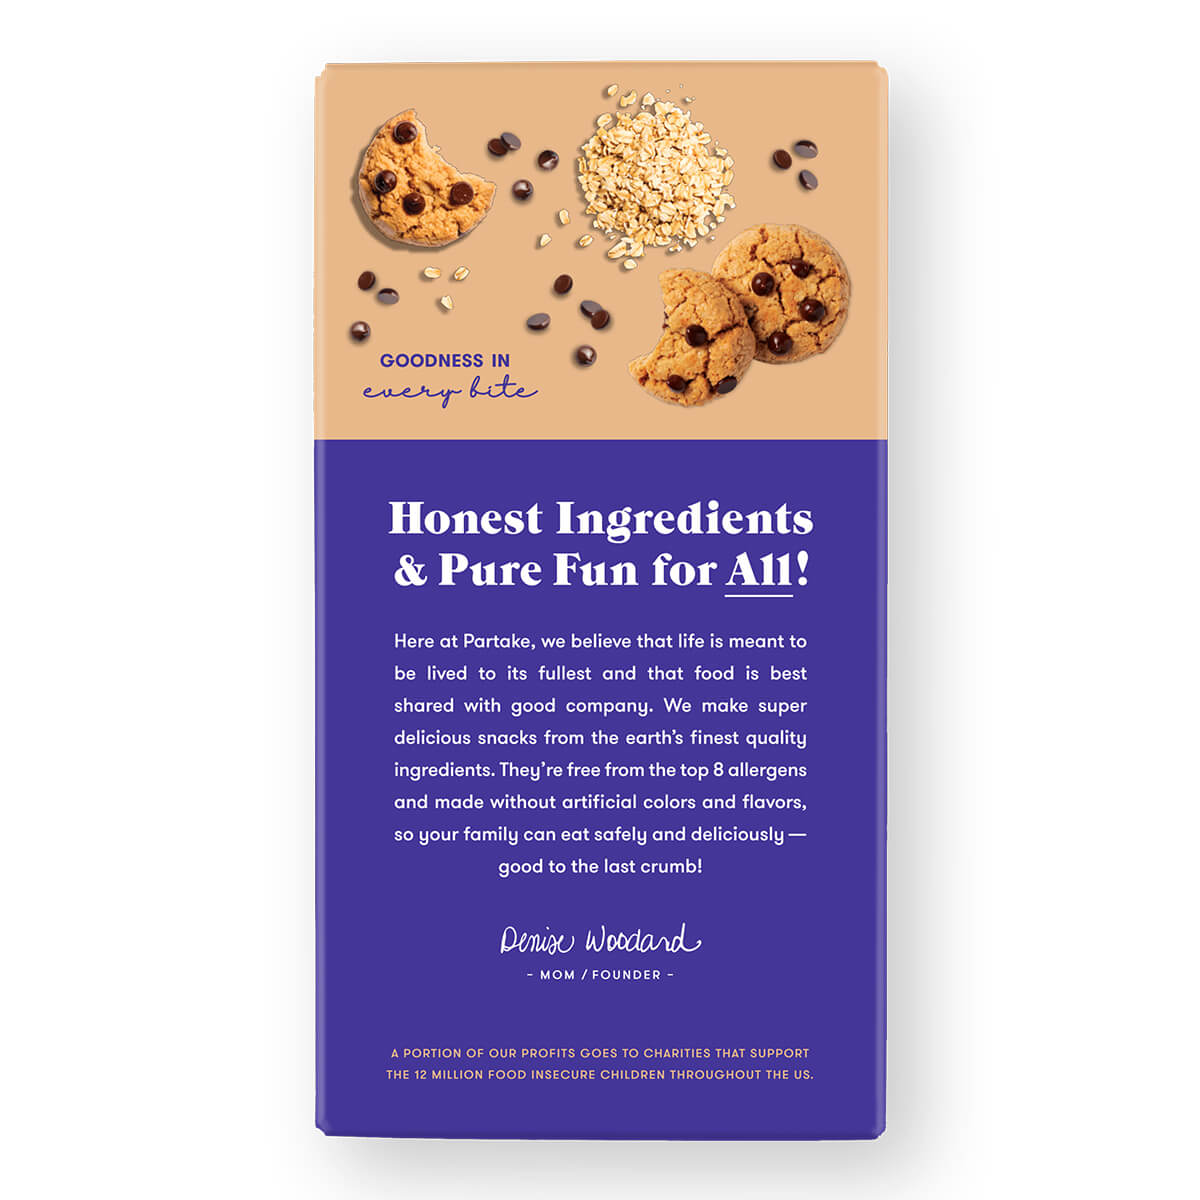 Partake Crunchy Chocolate Chip Cookies - back